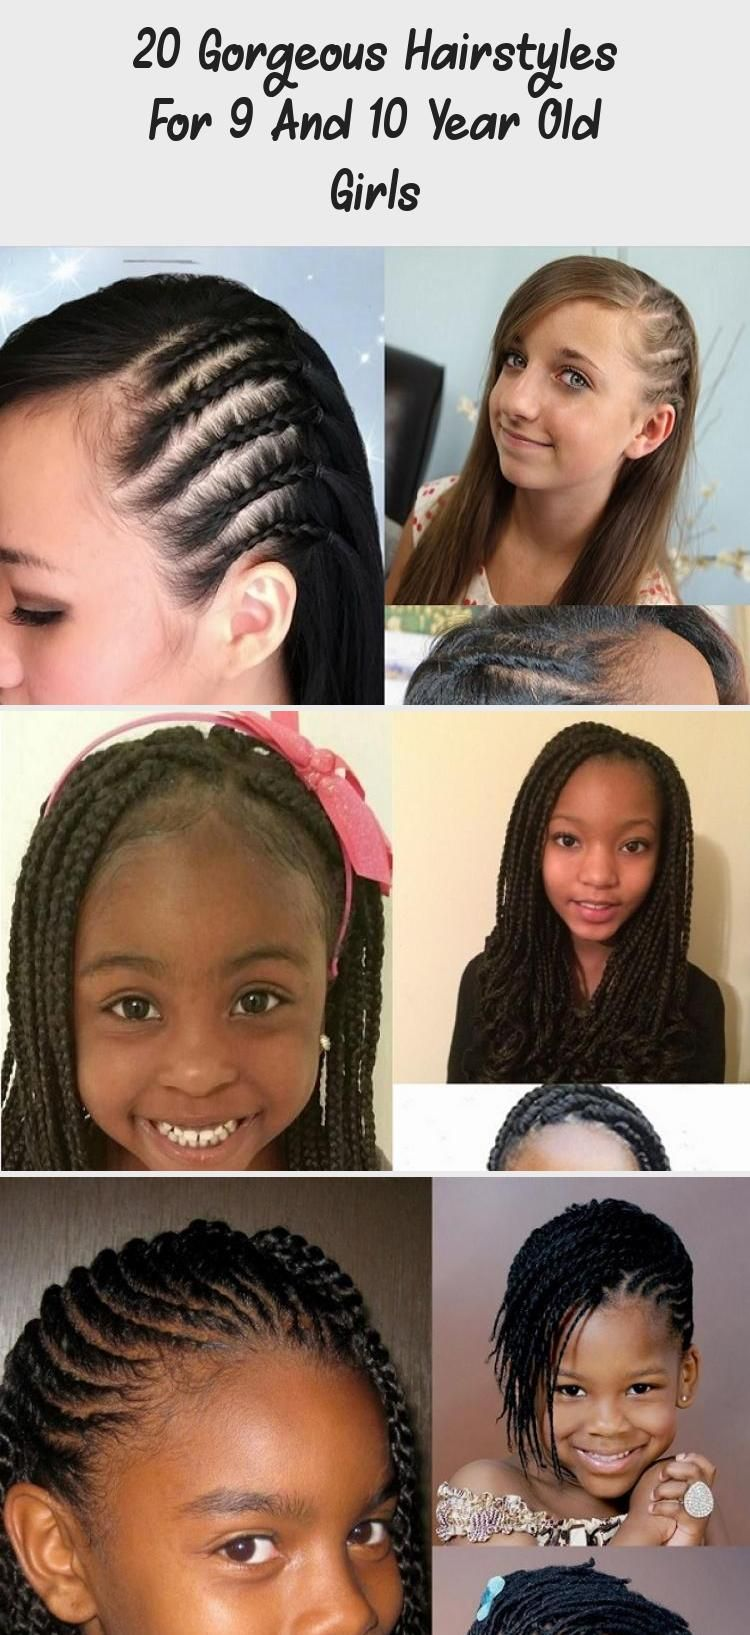 20 Gorgeous Hairstyles For 9 And 10 Year Old Girls Child Insider Everydayhairstyles Glasses Everydayhairstyle In 2020 Gorgeous Hair Everyday Hairstyles Hair Styles